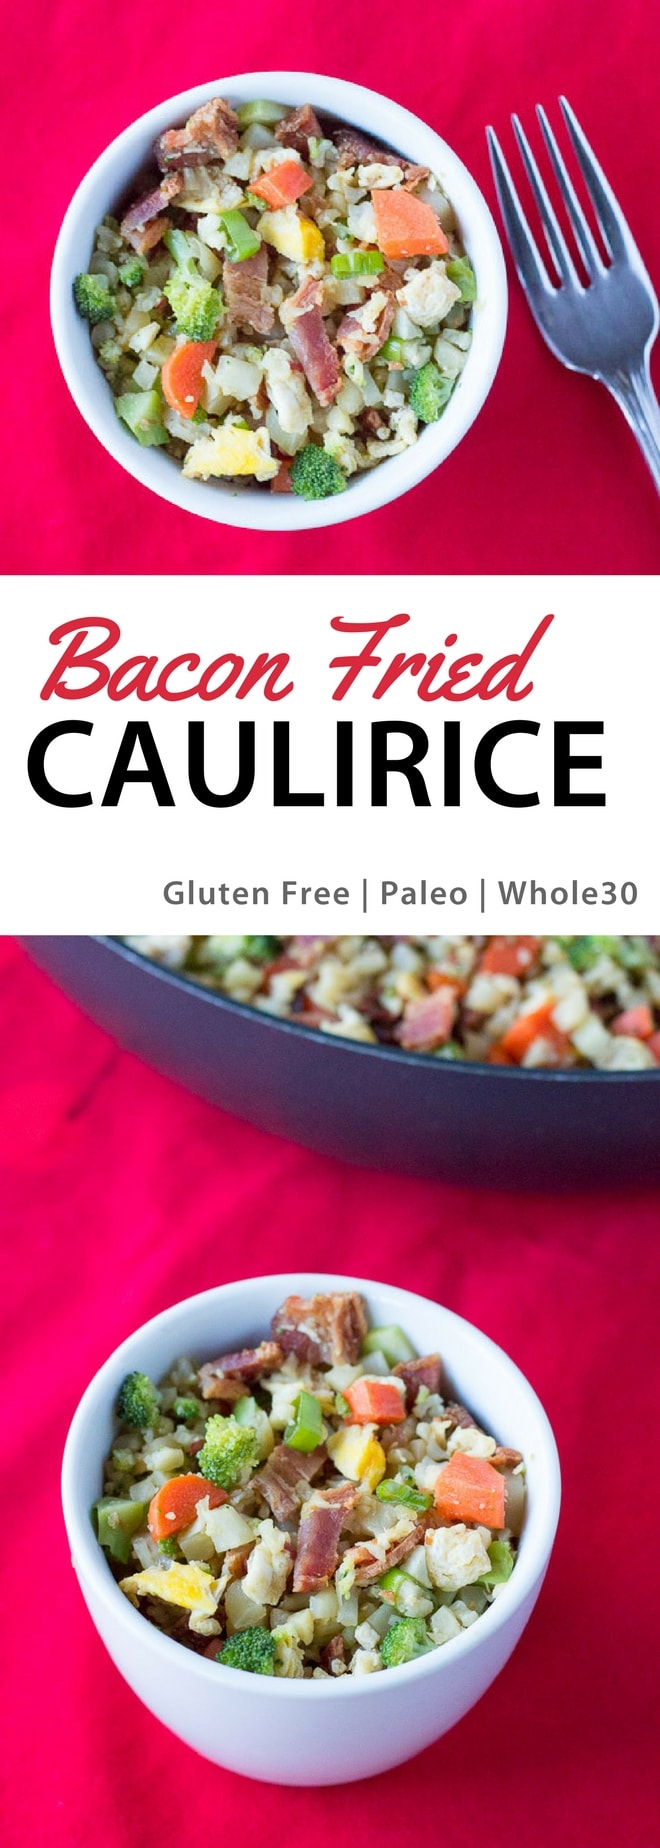 Bacon Fried Caulirice (Gluten Free, Paleo, Whole30)